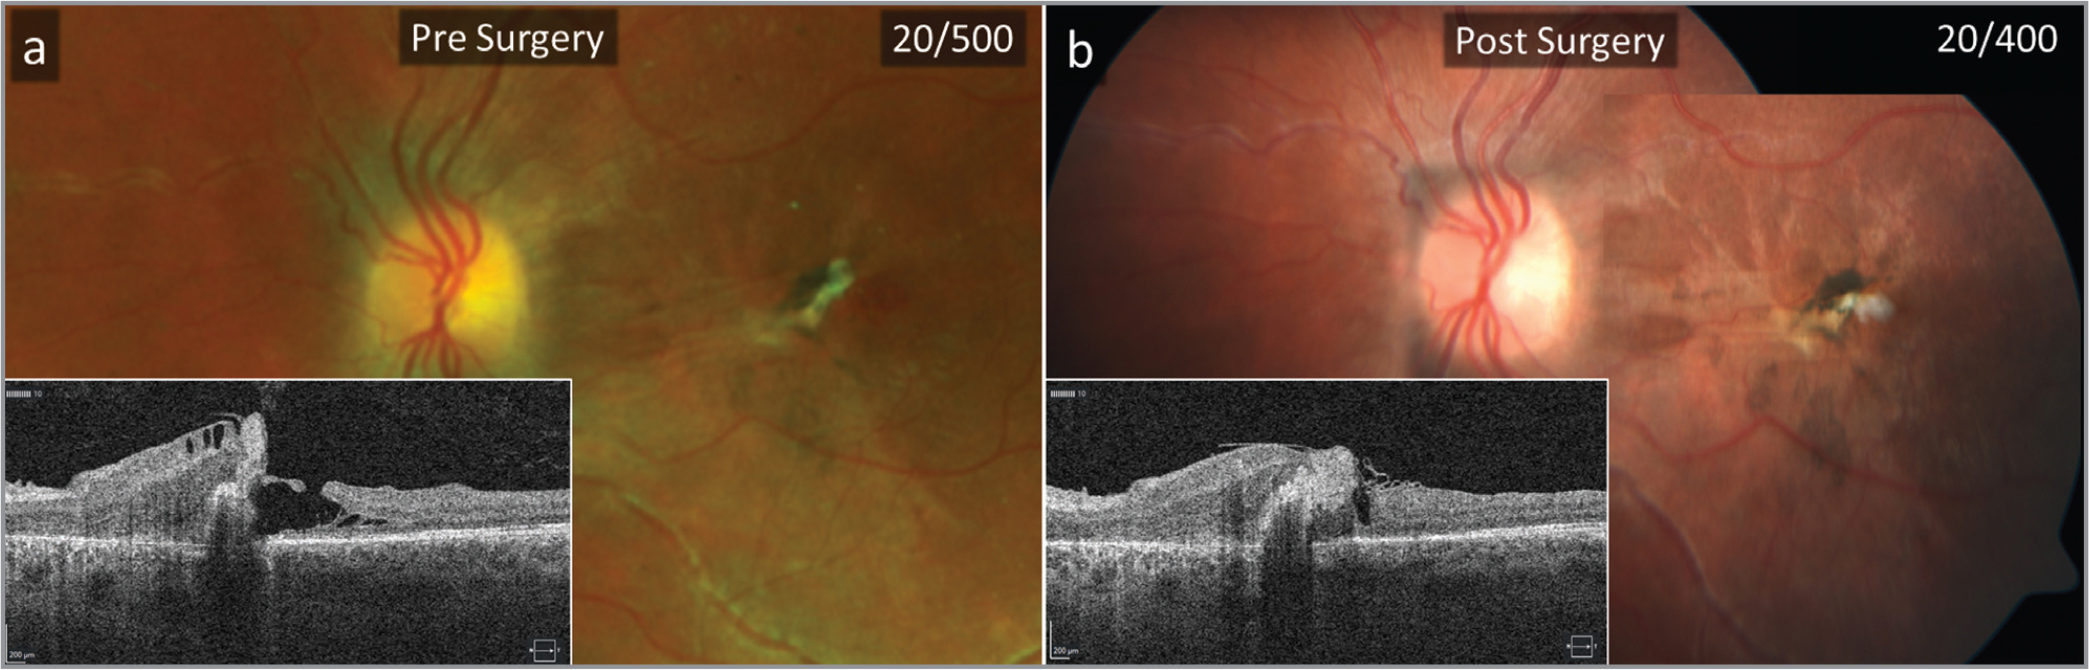 (a) Fundus photo and optical coherence tomography (OCT) displaying full-thickness macular hole and pigmented epithelial detachment pre-surgery. (b) Fundus photo and OCT showing hole closure 4 months after surgery.